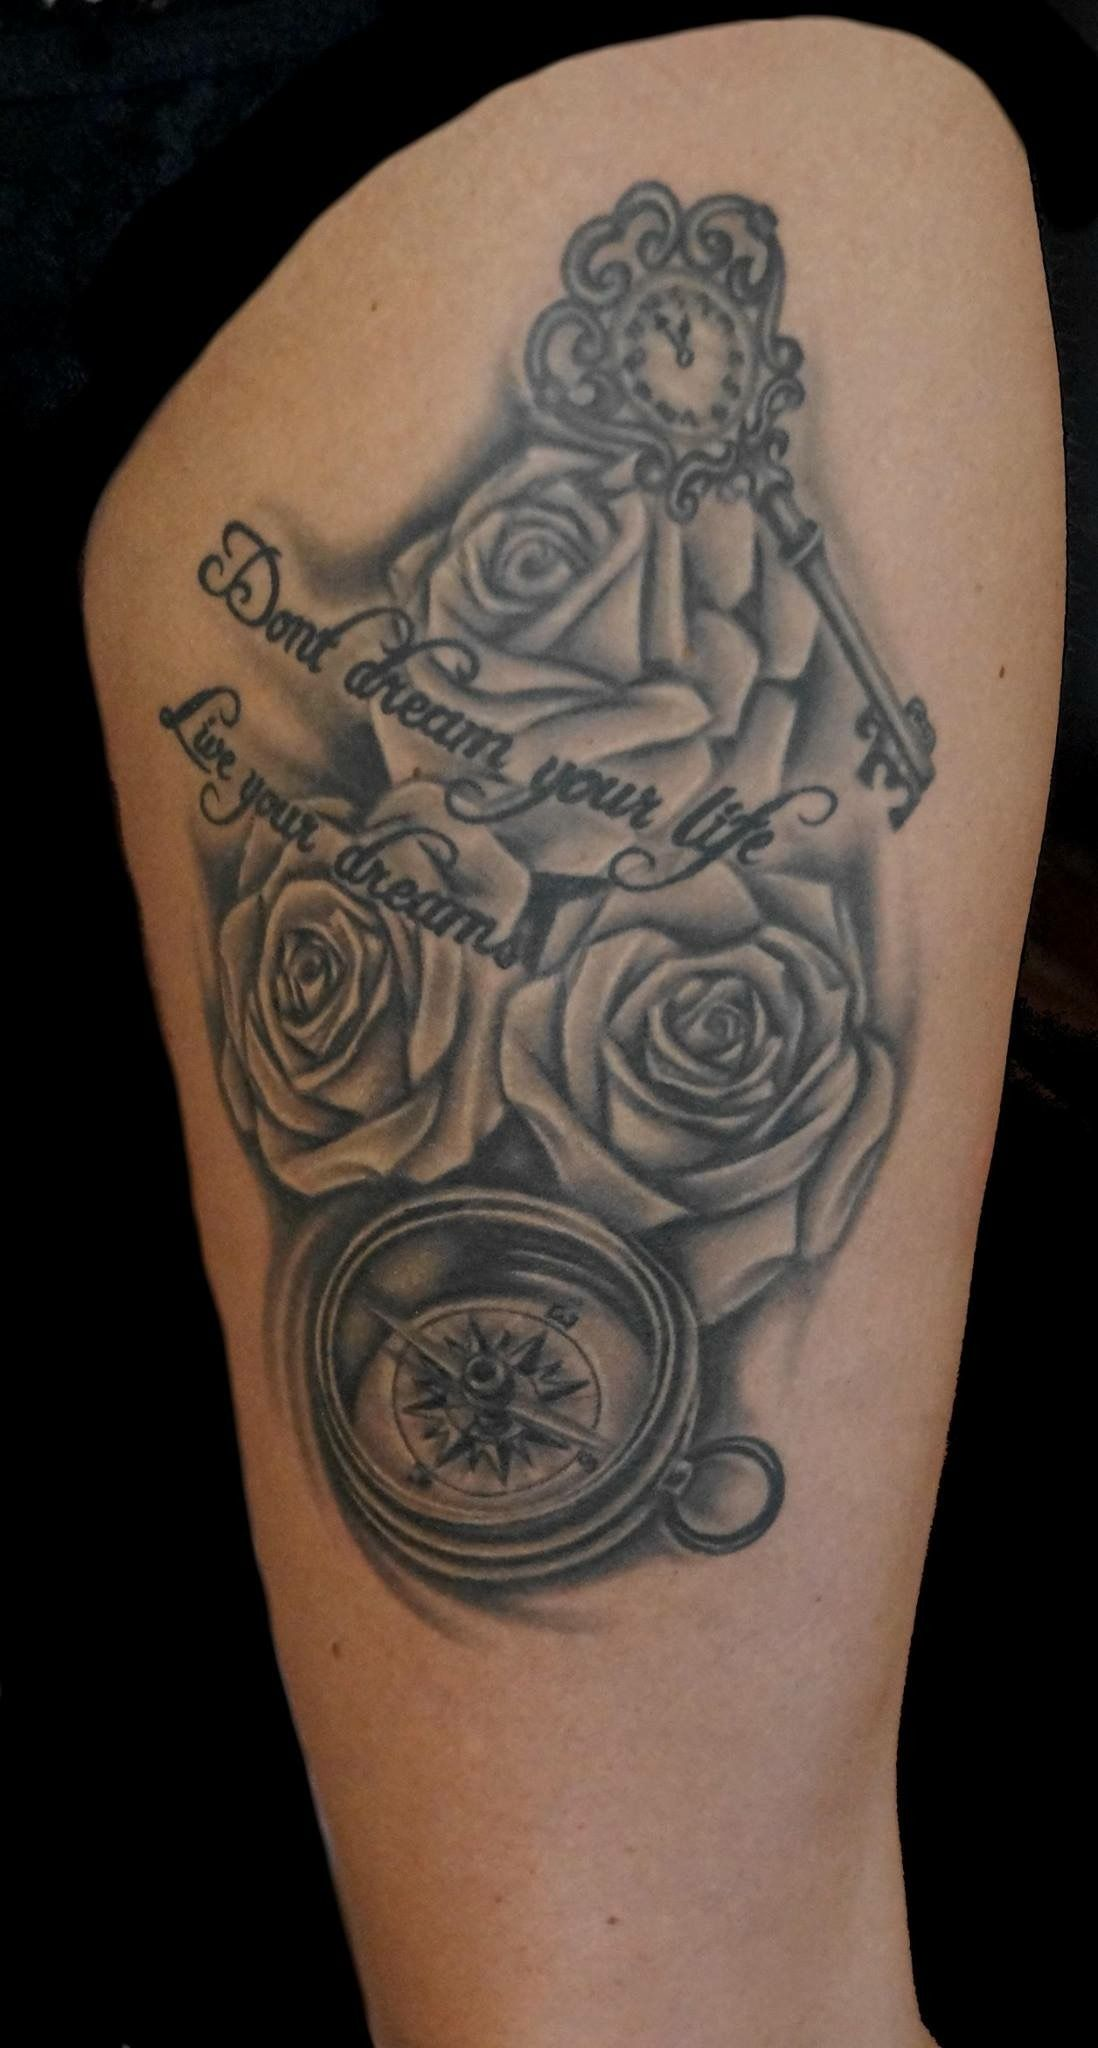 rosen rose kompass compass tattoo bunte leute tattoo art pinterest. Black Bedroom Furniture Sets. Home Design Ideas